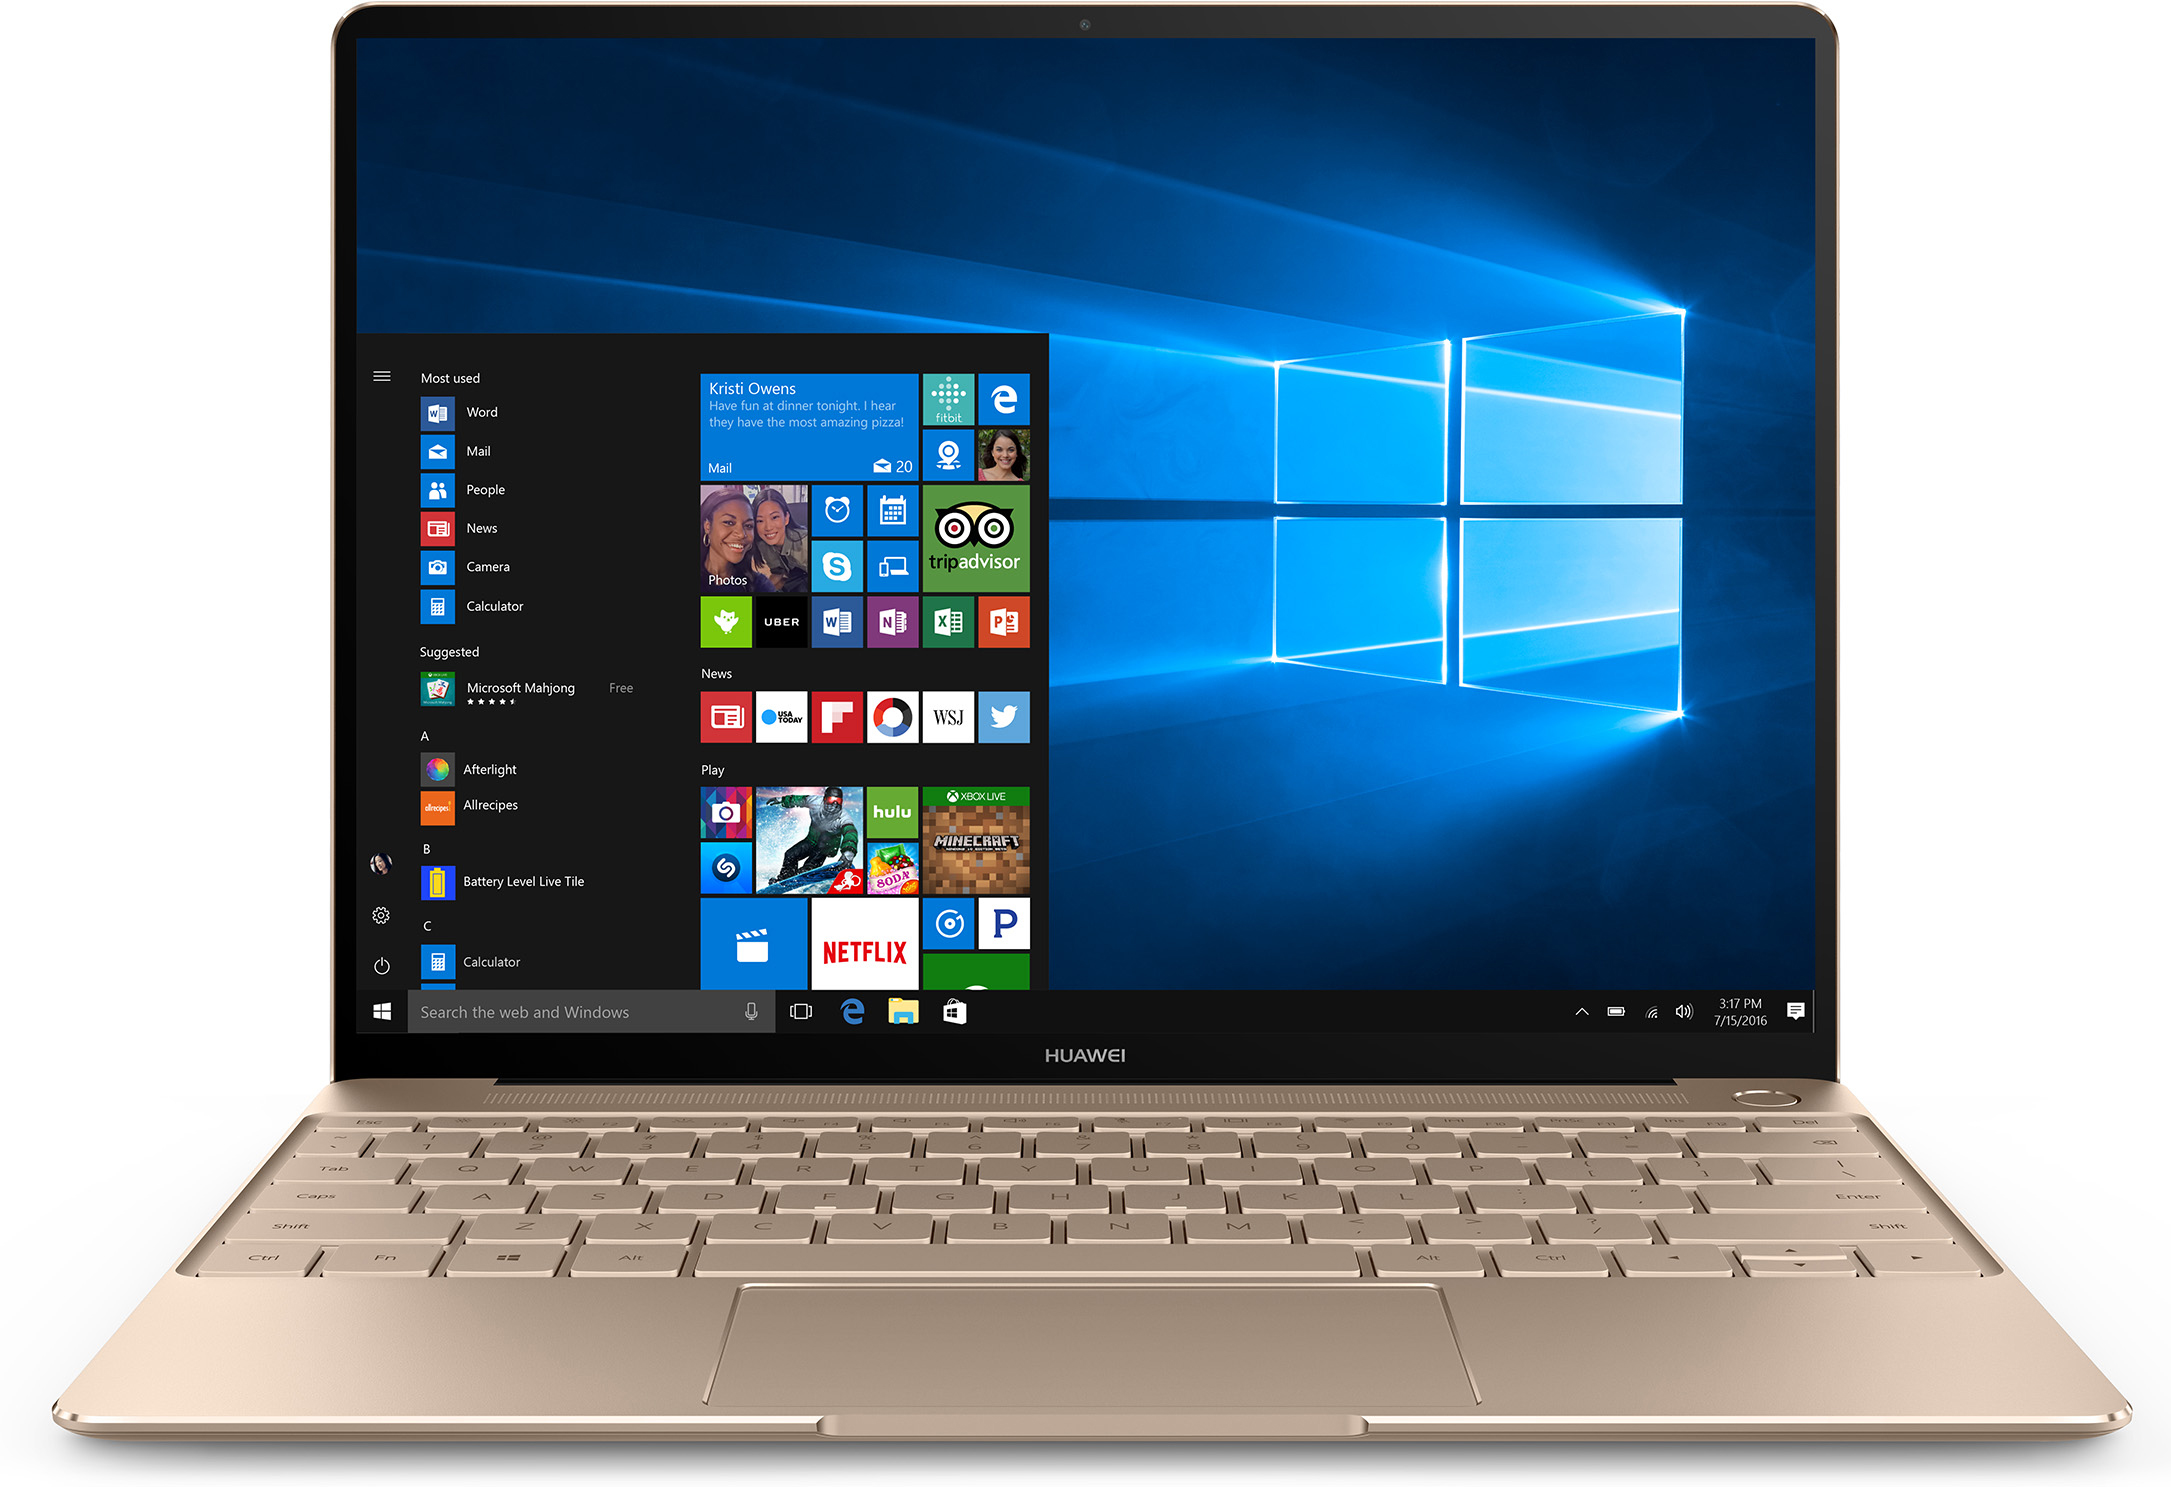 Huawei MateBook X 53018975 Laptop (Prestige Gold) Deal